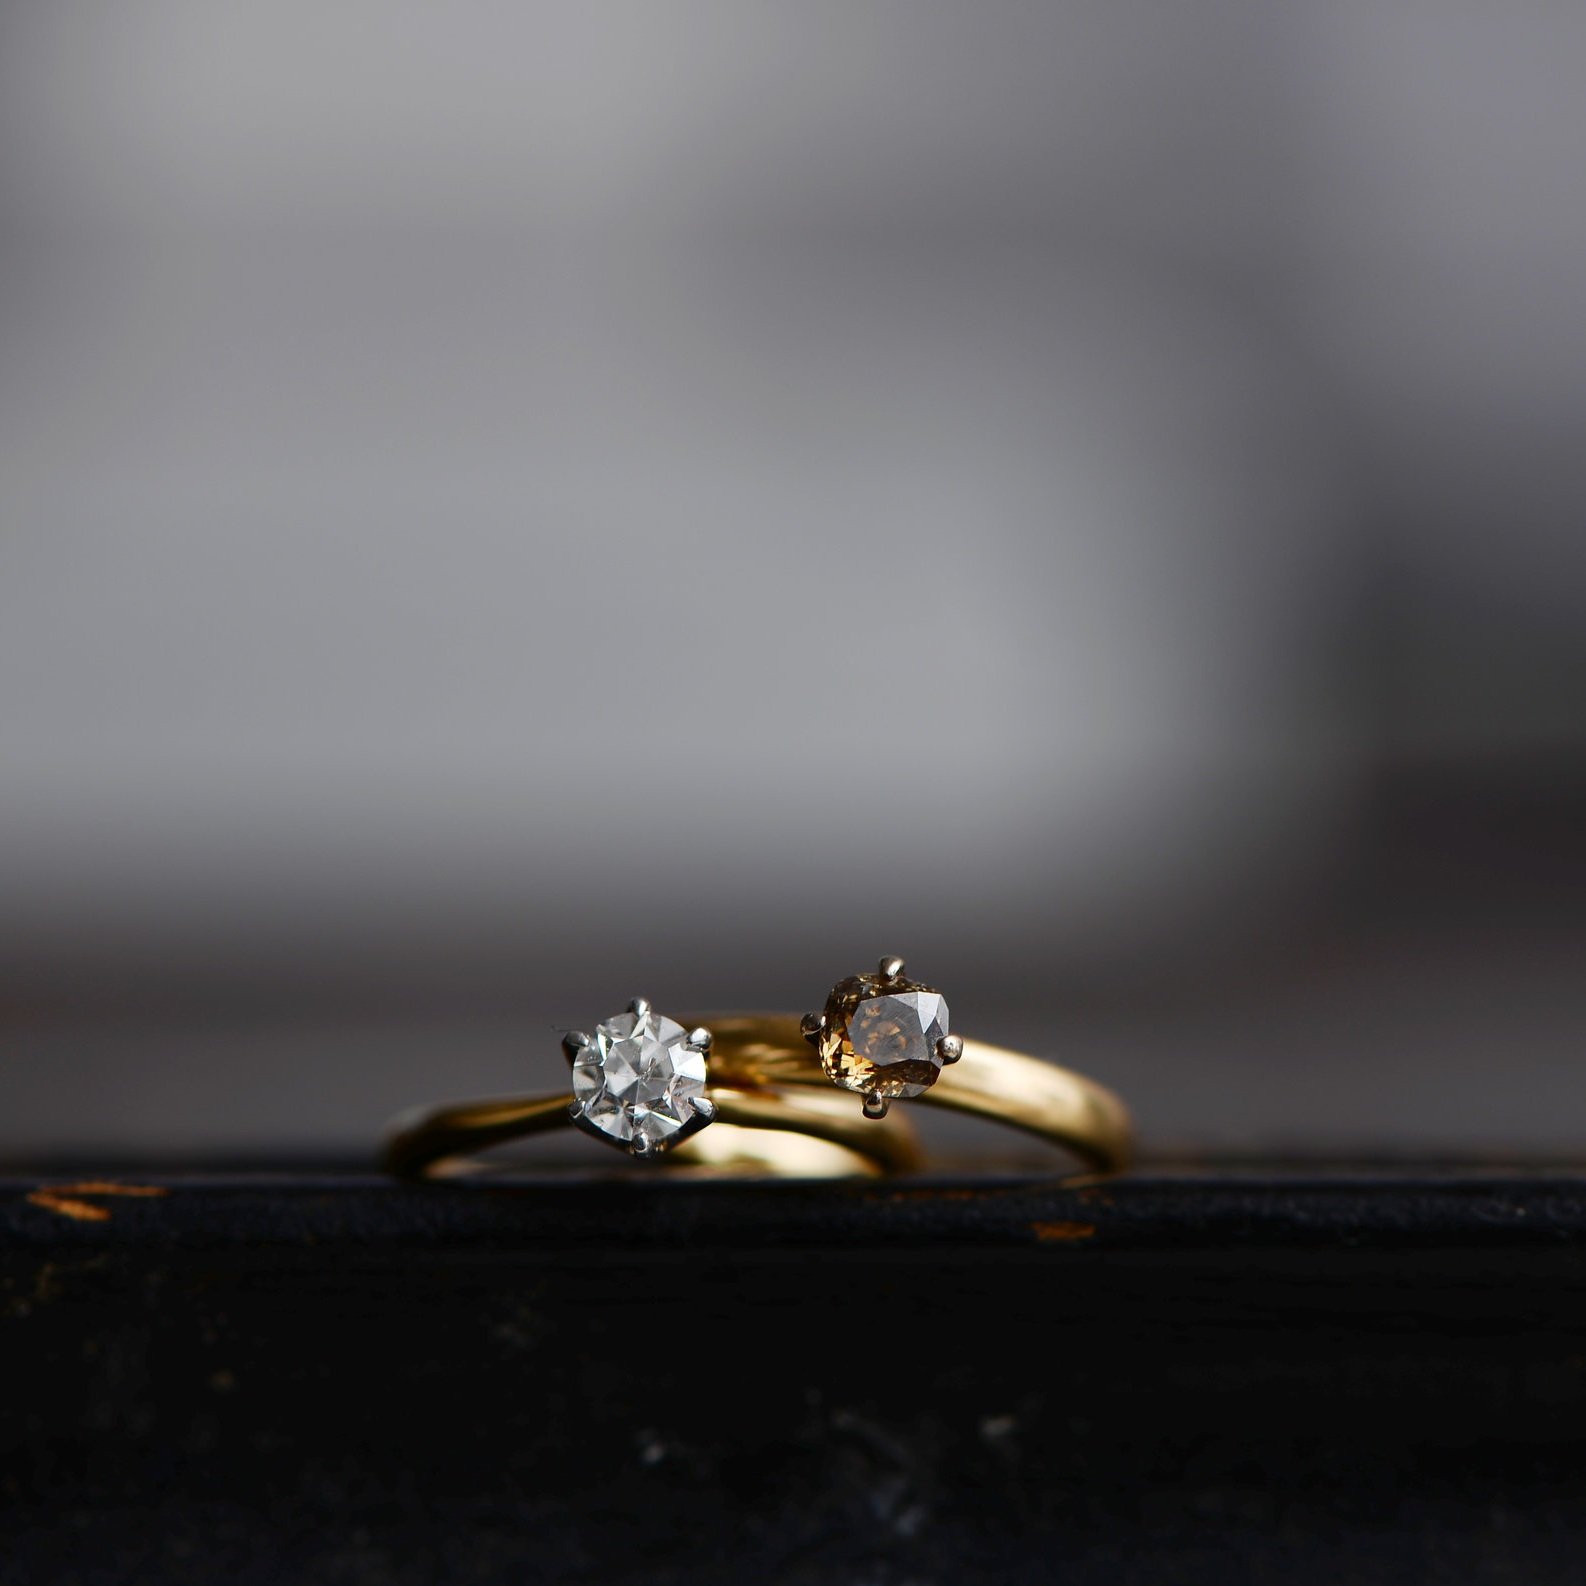 Solitaire ring(R:clear,L:brown)